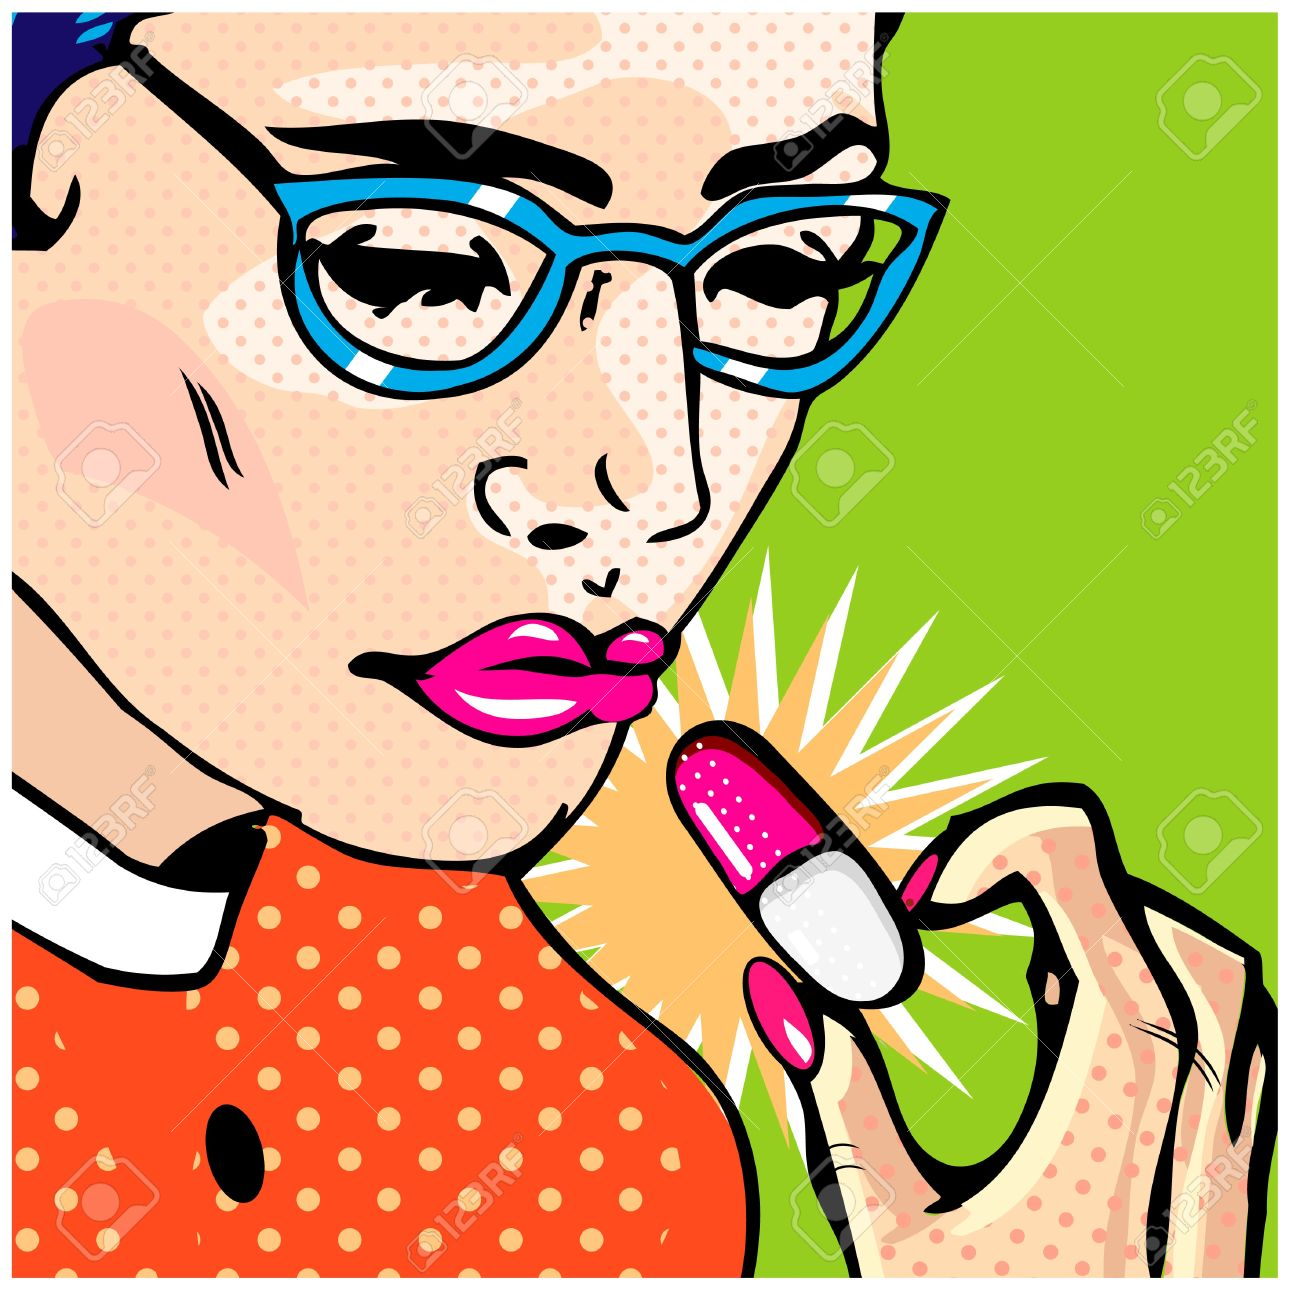 Illustration of a woman consuming a pill Stock Vector - 9885263